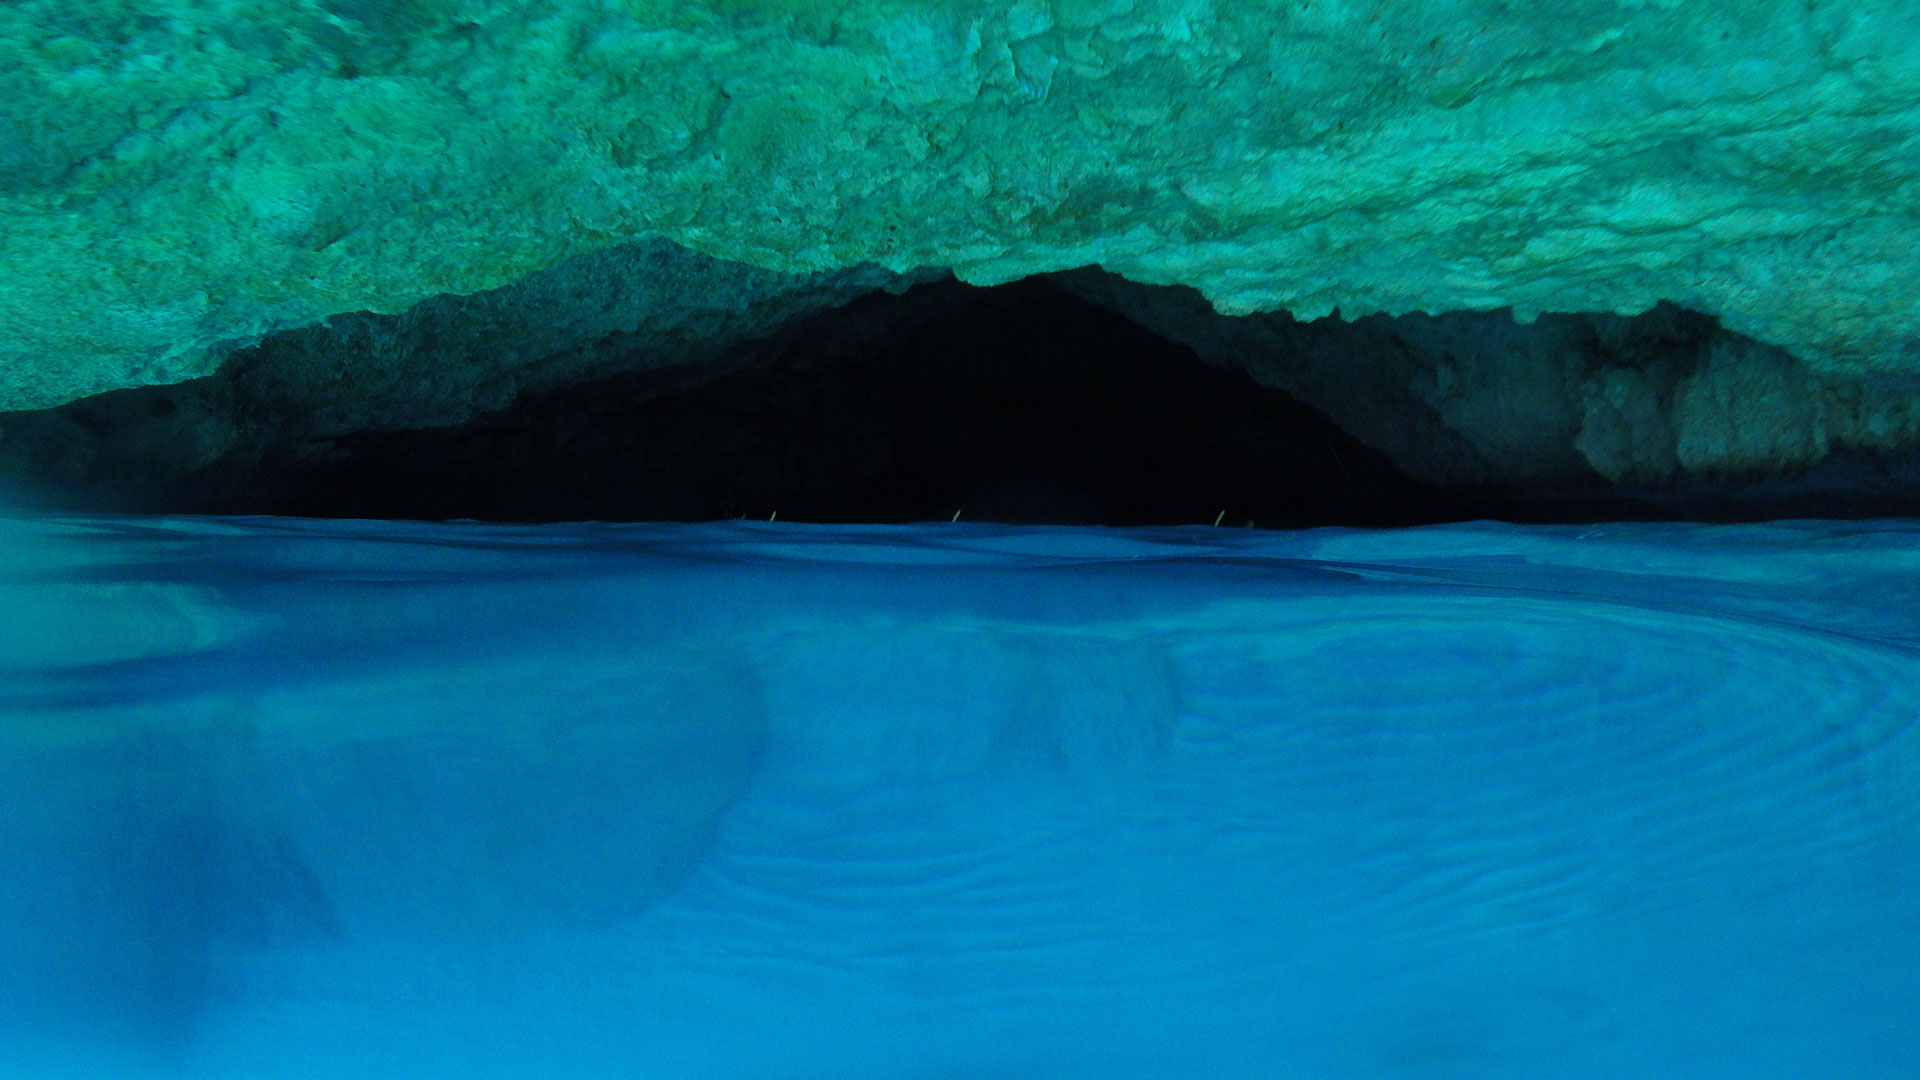 Blue Room Cave Above Water